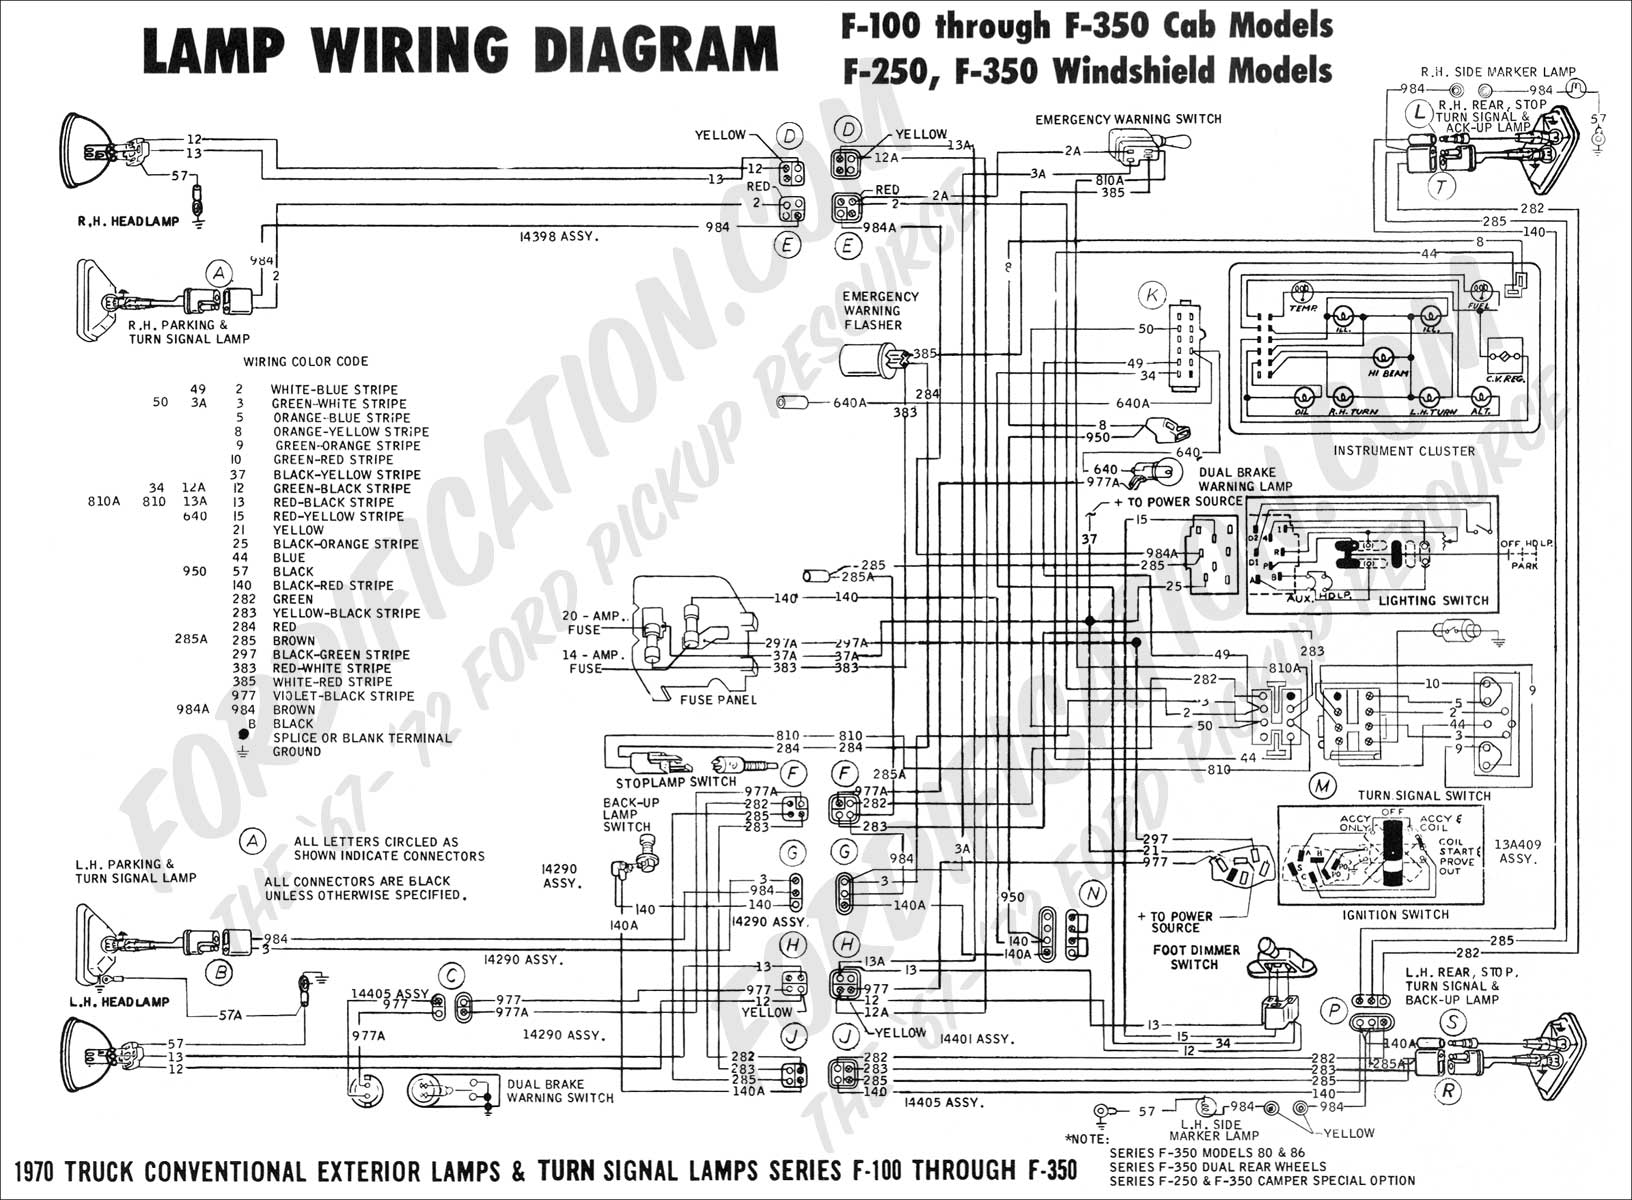 1967 F250 Horn Wiring Diagram Wiring Diagram View A View A Zaafran It